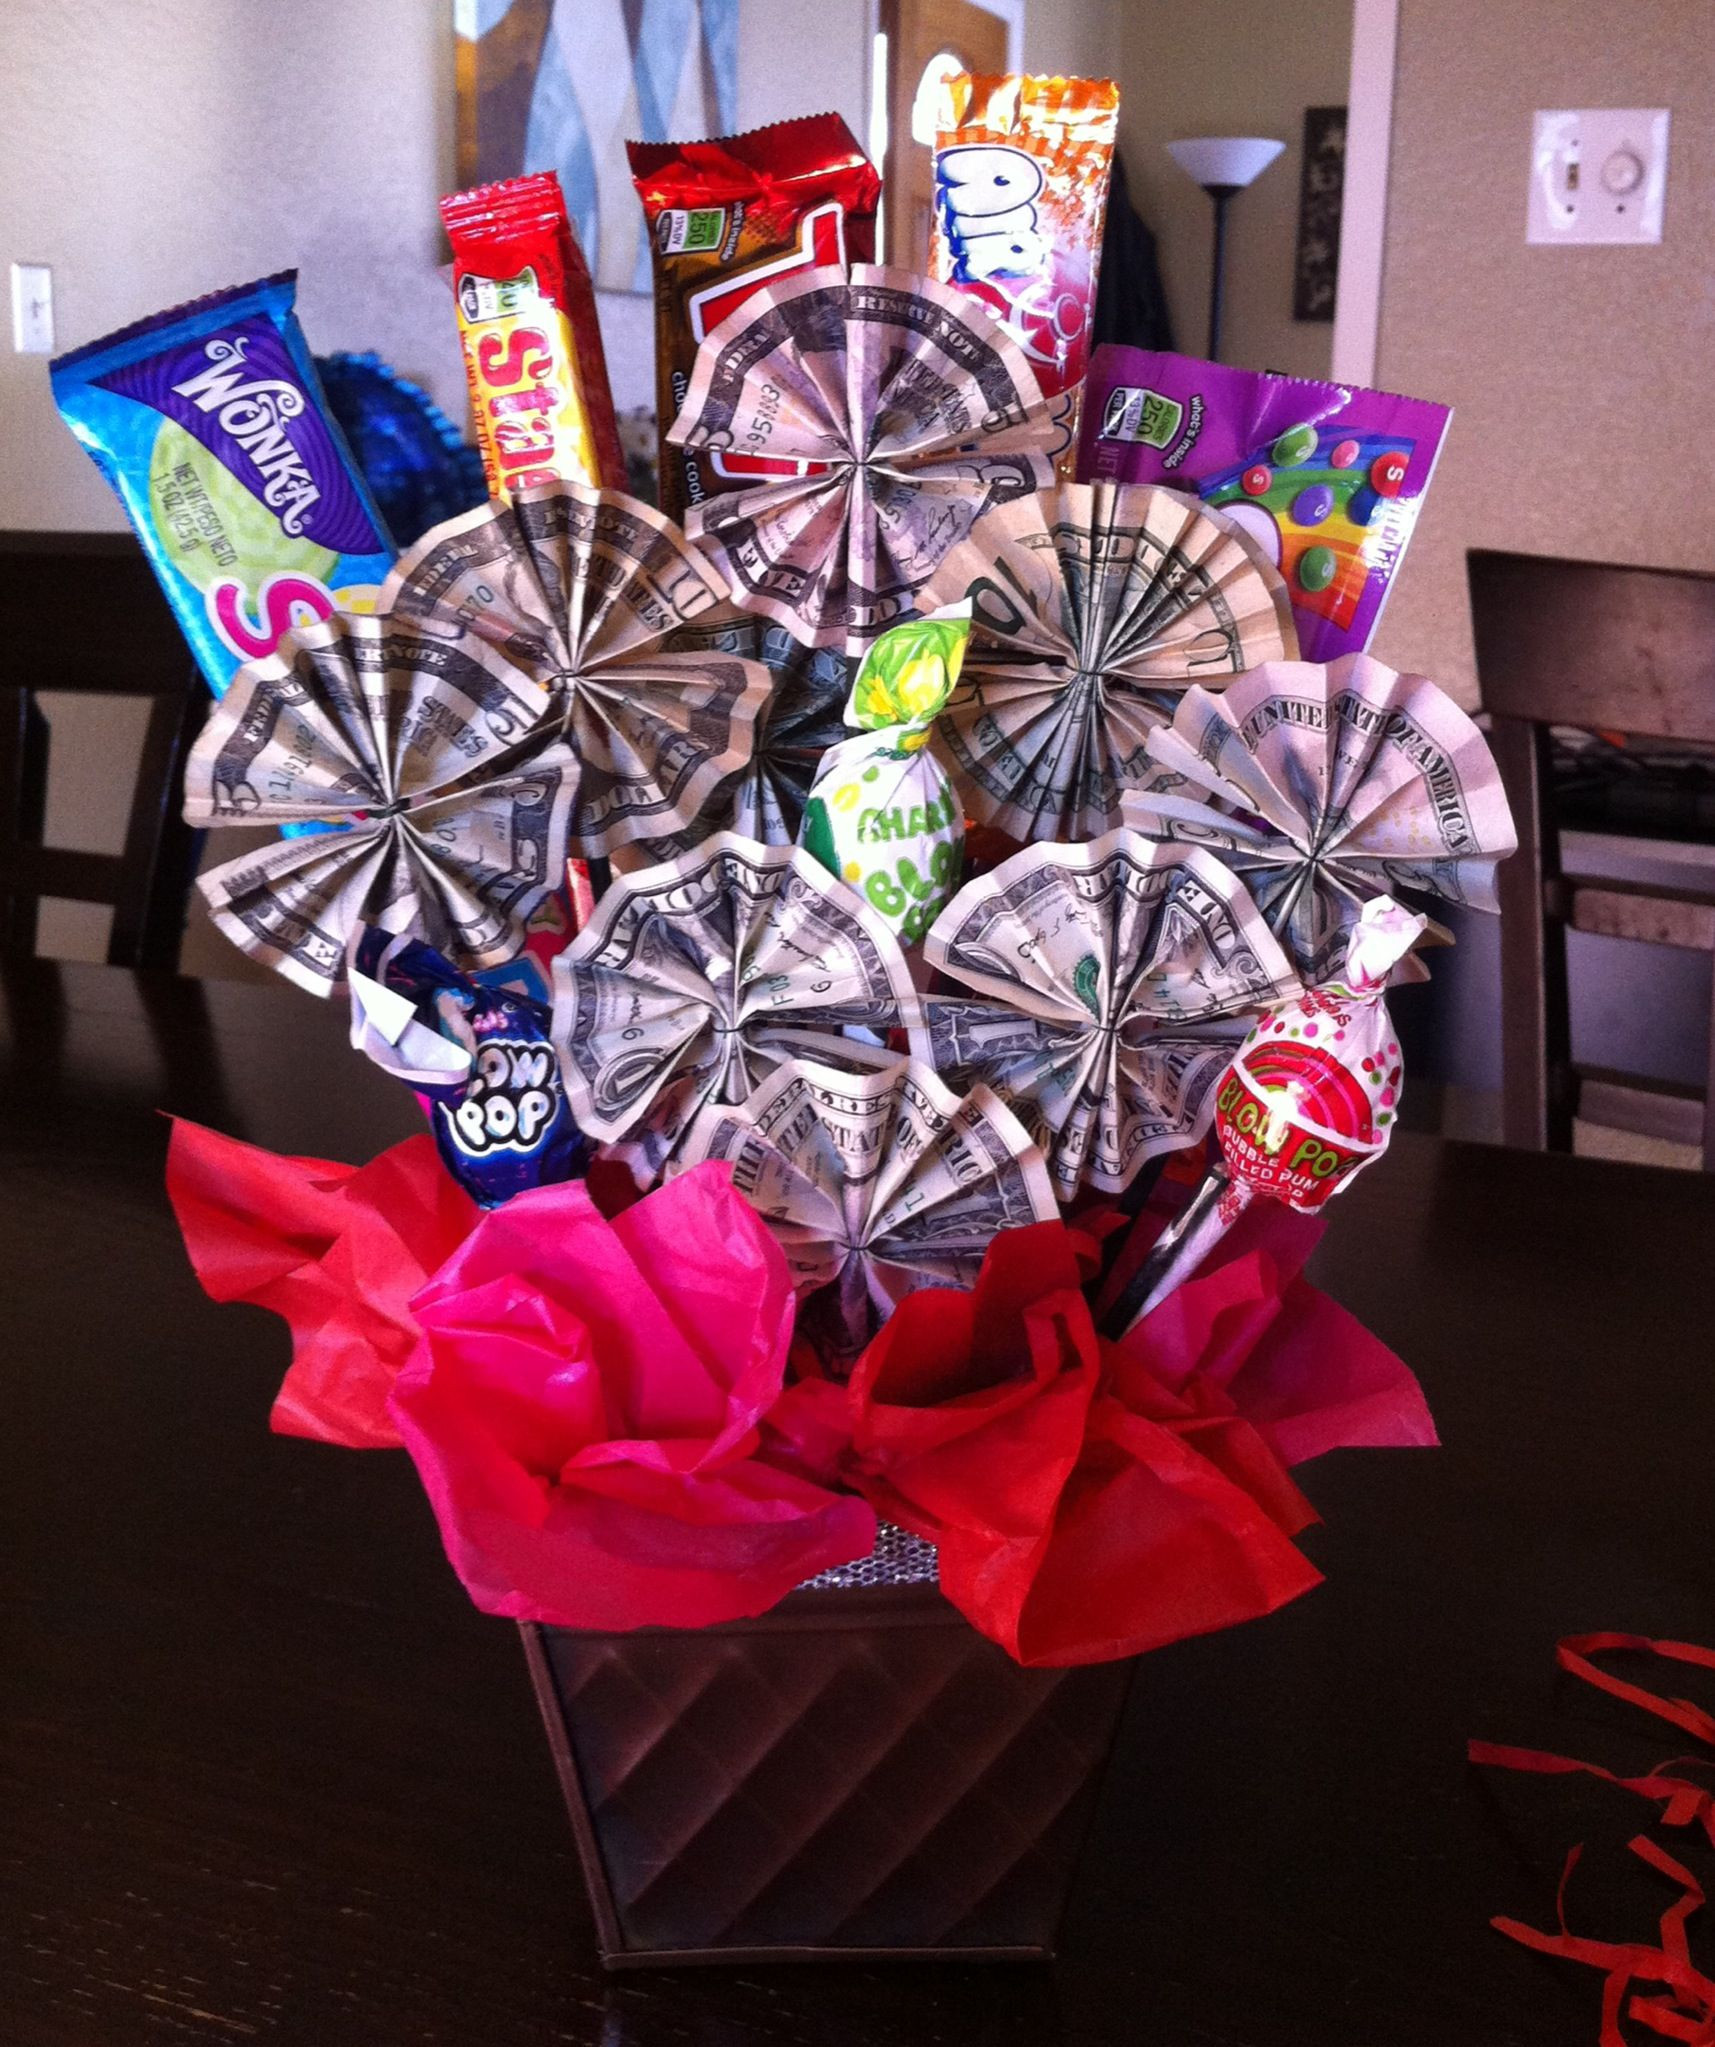 5Th Grade Girl Graduation Gift Ideas  Money candy bouquet I made this for my niece as a t